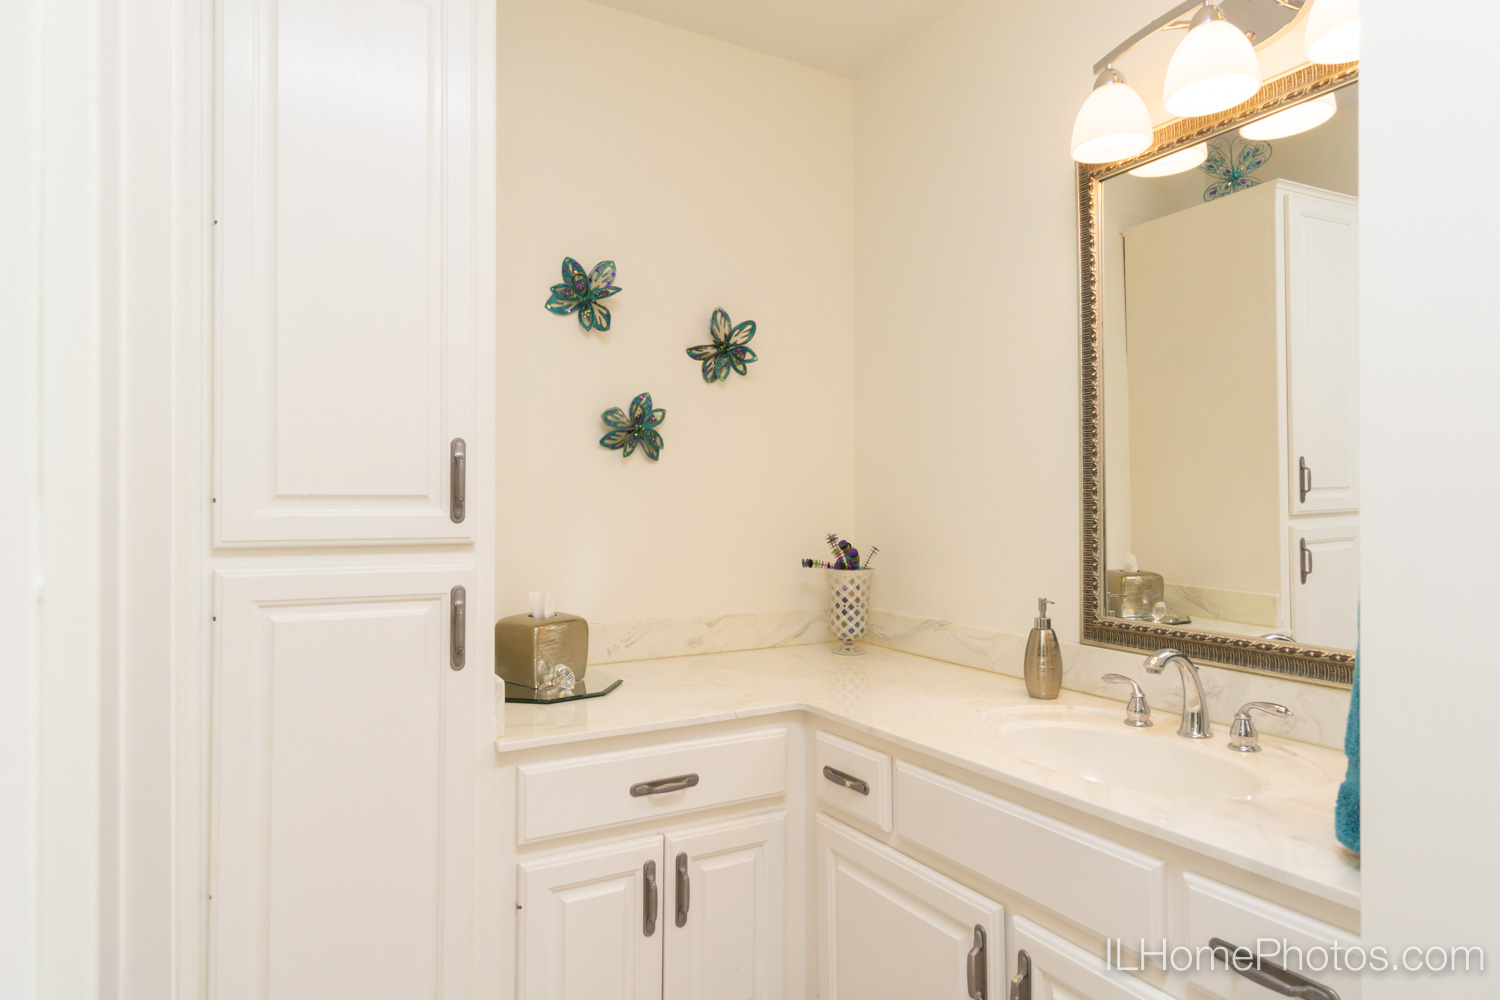 Interior master bathroom photograph for real estate in Mt Zion, IL :: Illinois Home Photography by Michael Gowin, Lincoln, IL